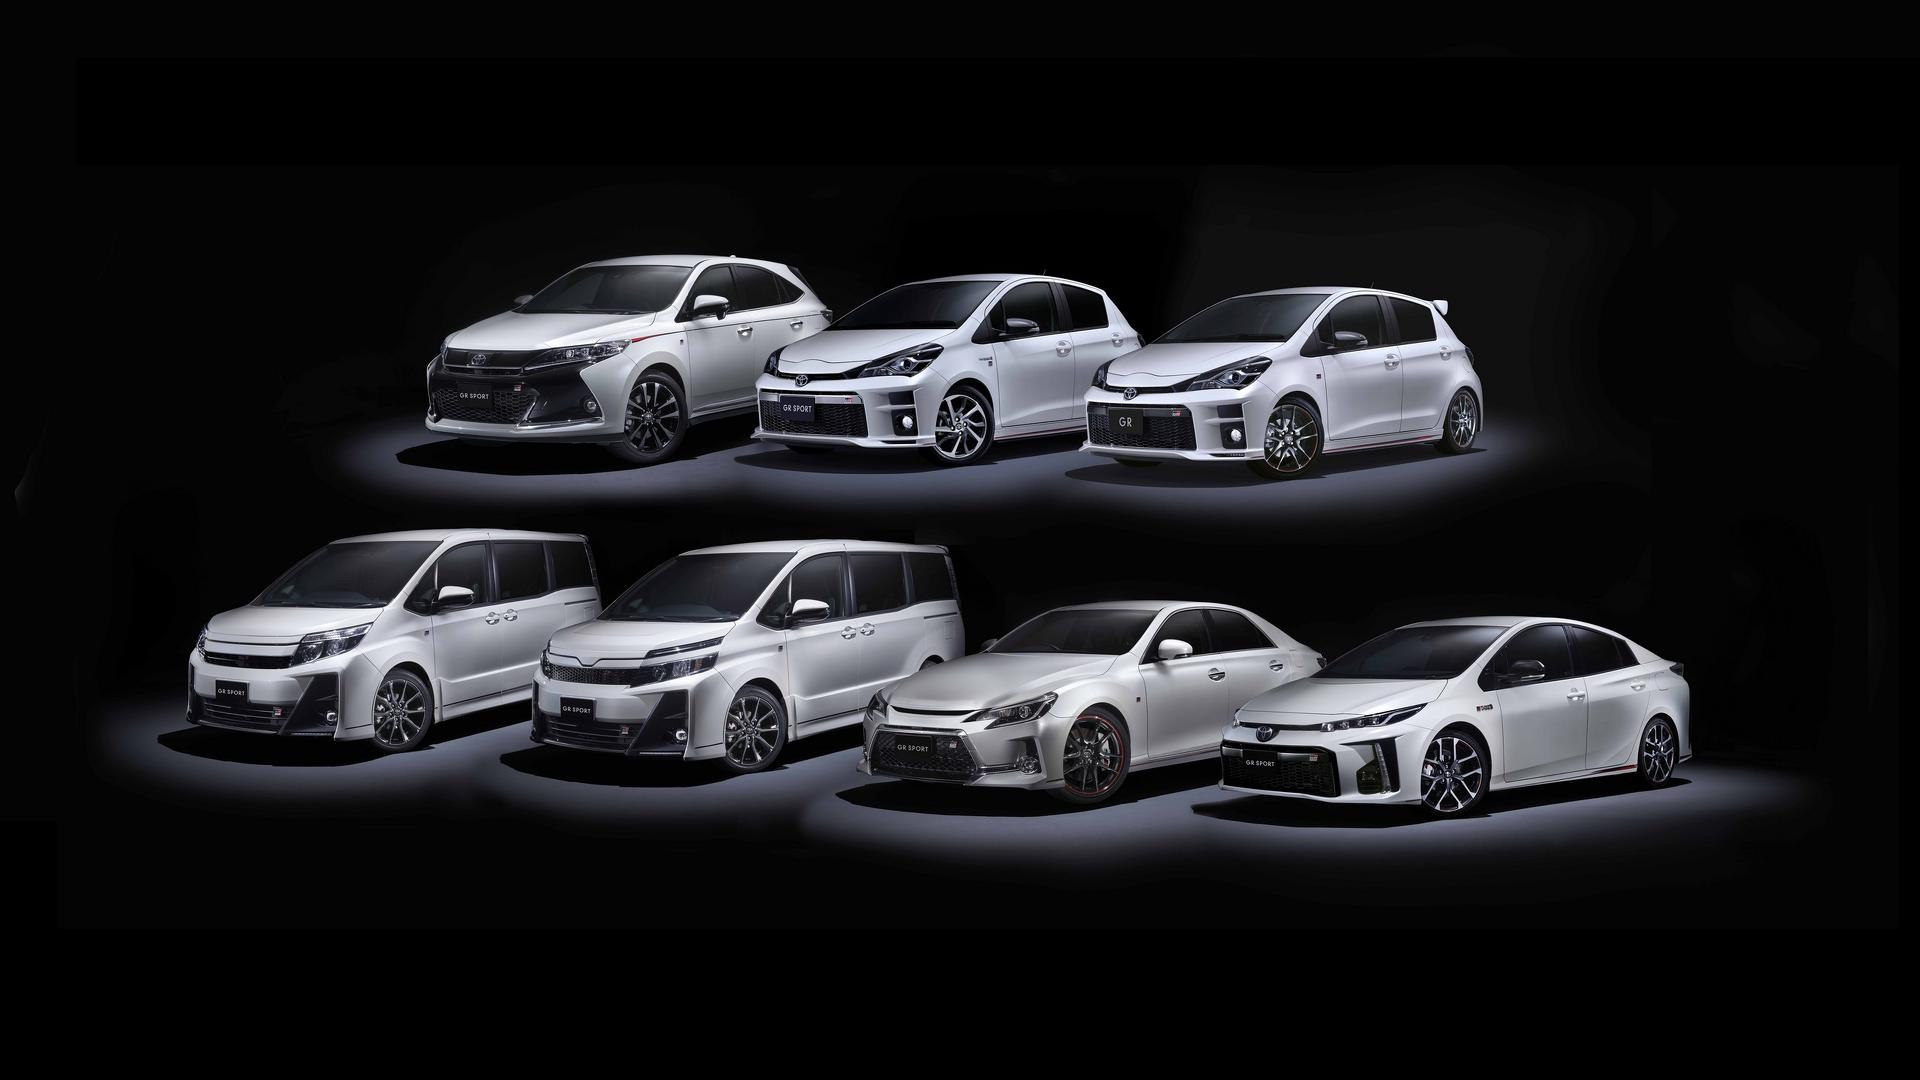 Details On Each One Here: Http://newsroom.toyota .co.jp/en/detail/mail/18651904